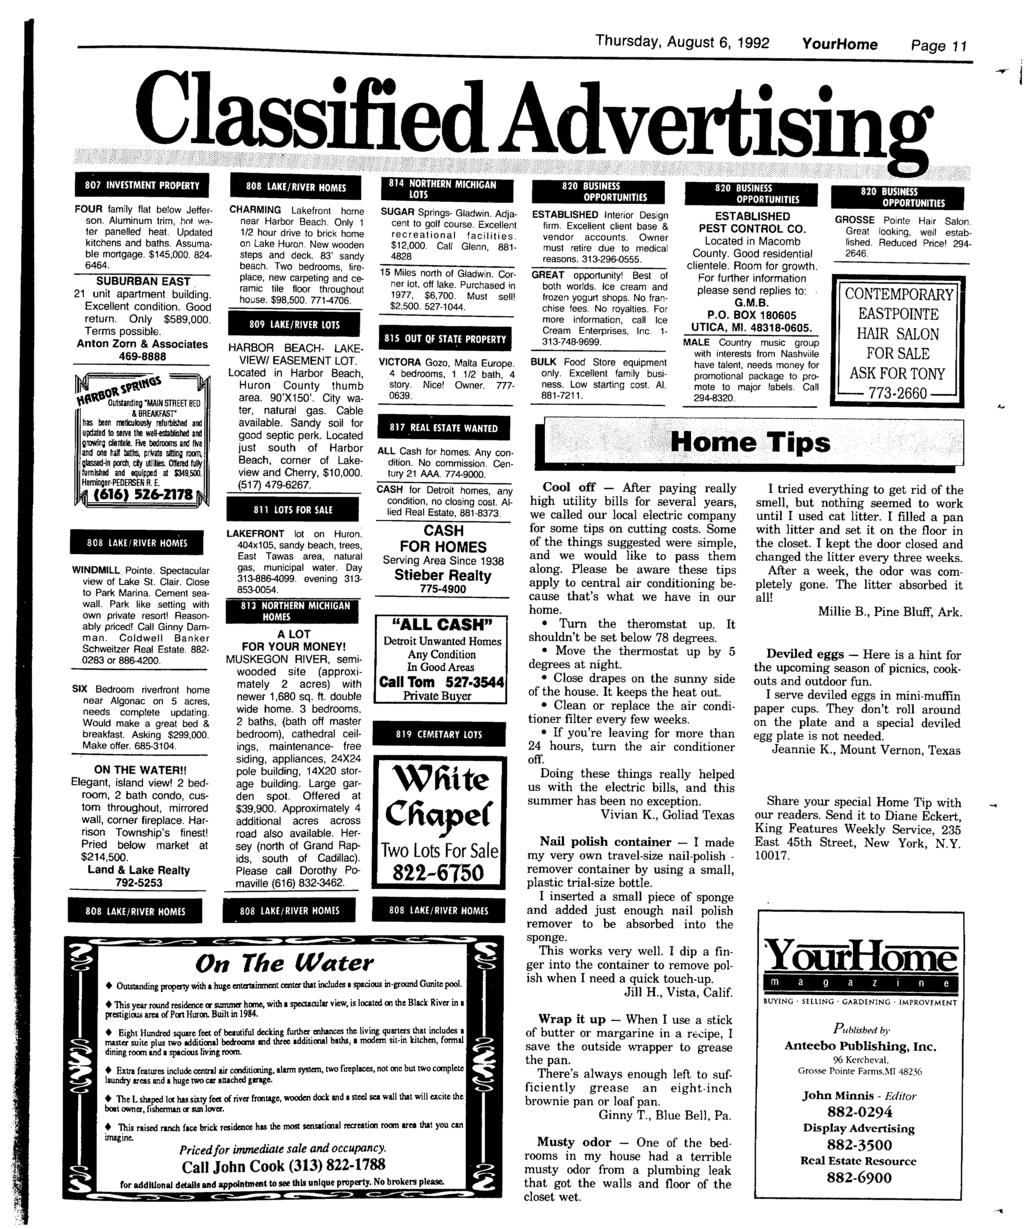 Your Community Newspaper 81mt Pdf How To Build A Horse Barn Hometips Thursday August 6 1992 Yourhome Page 11 E Vertisin 807 Nvestment Property Four Family